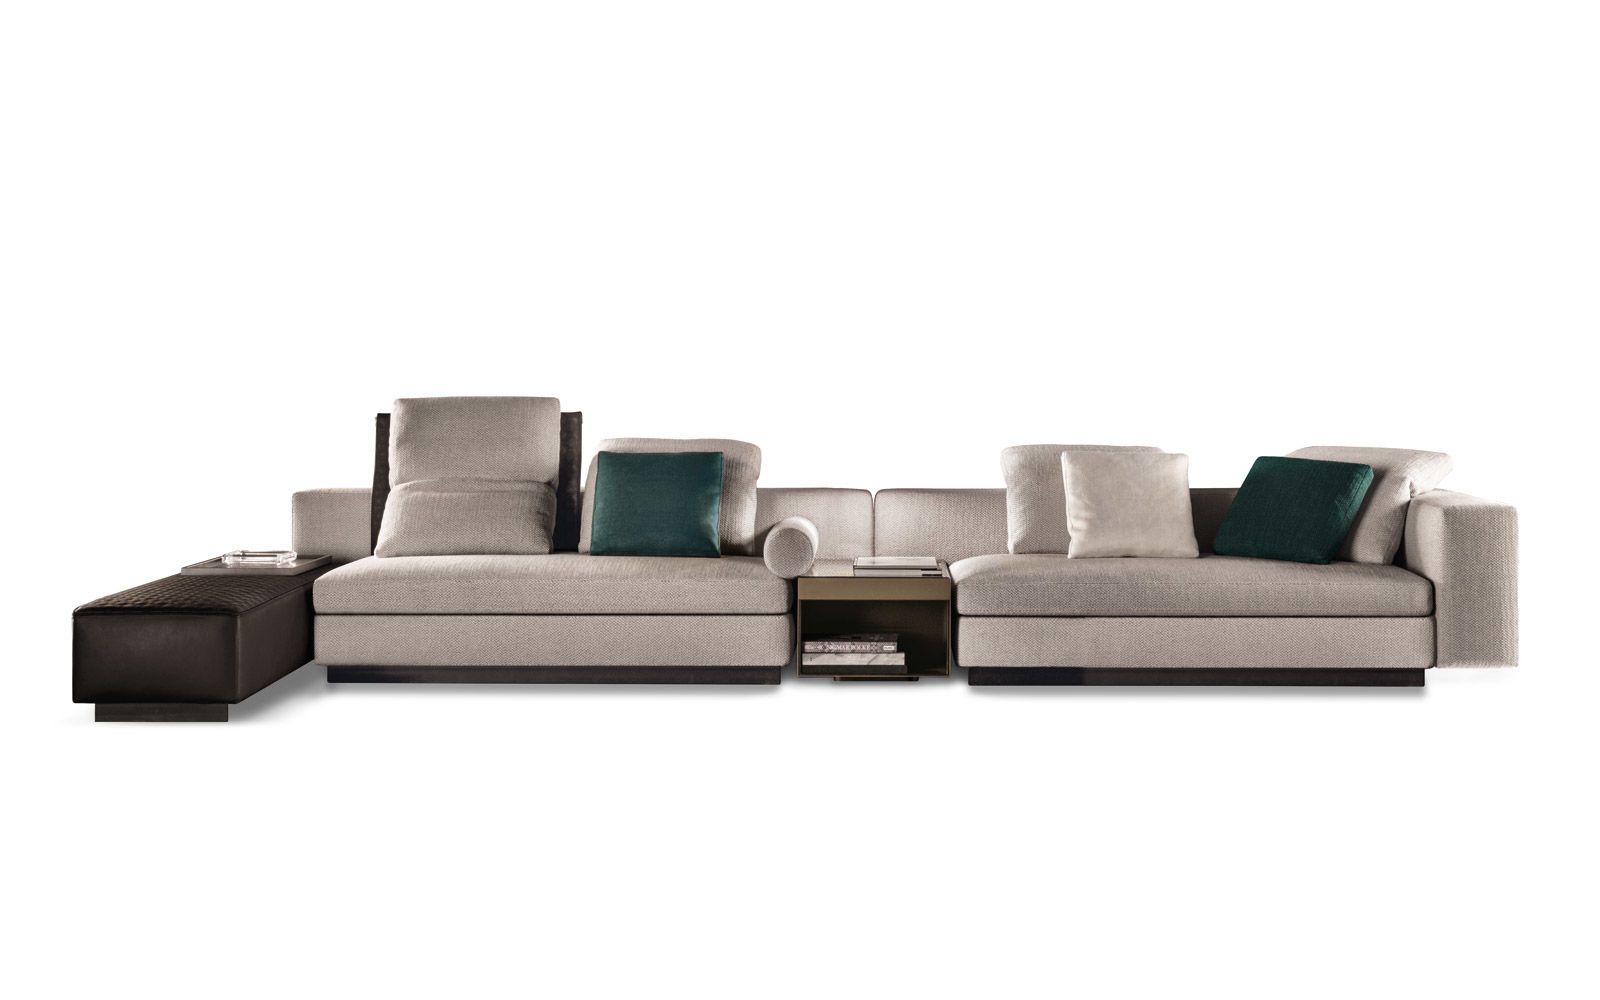 Full Size of Minotti Sofa Freeman Alexander Dimensions Hamilton For Sale Size Lawrence Sofas De Yang Bezug Ecksofa Mit Elektrischer Sitztiefenverstellung Cassina Reinigen Sofa Minotti Sofa